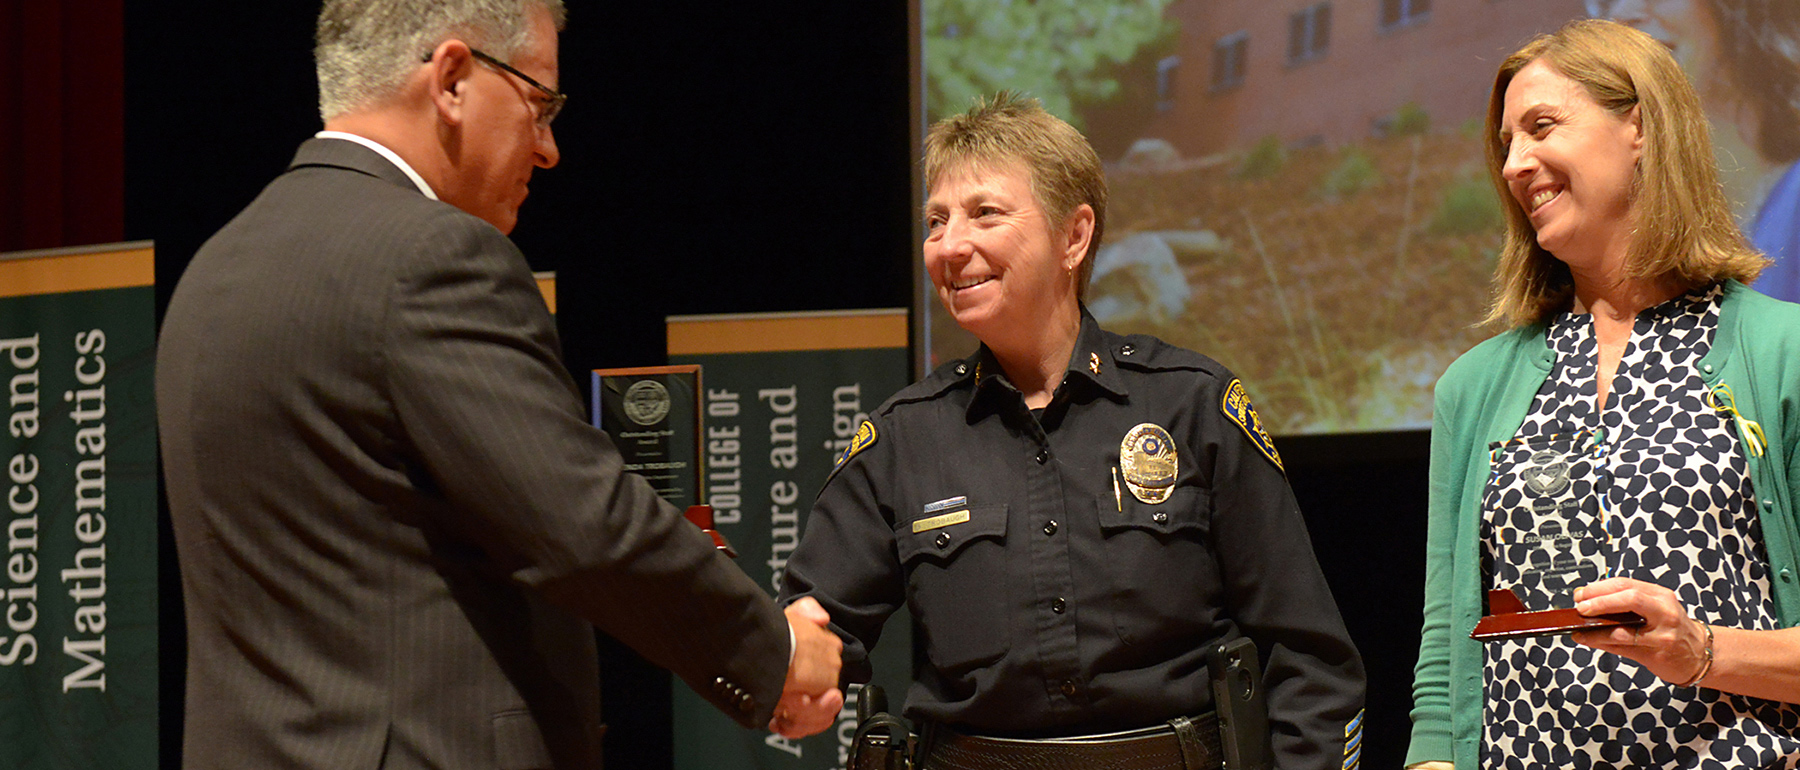 Deputy Chief photo recieving award